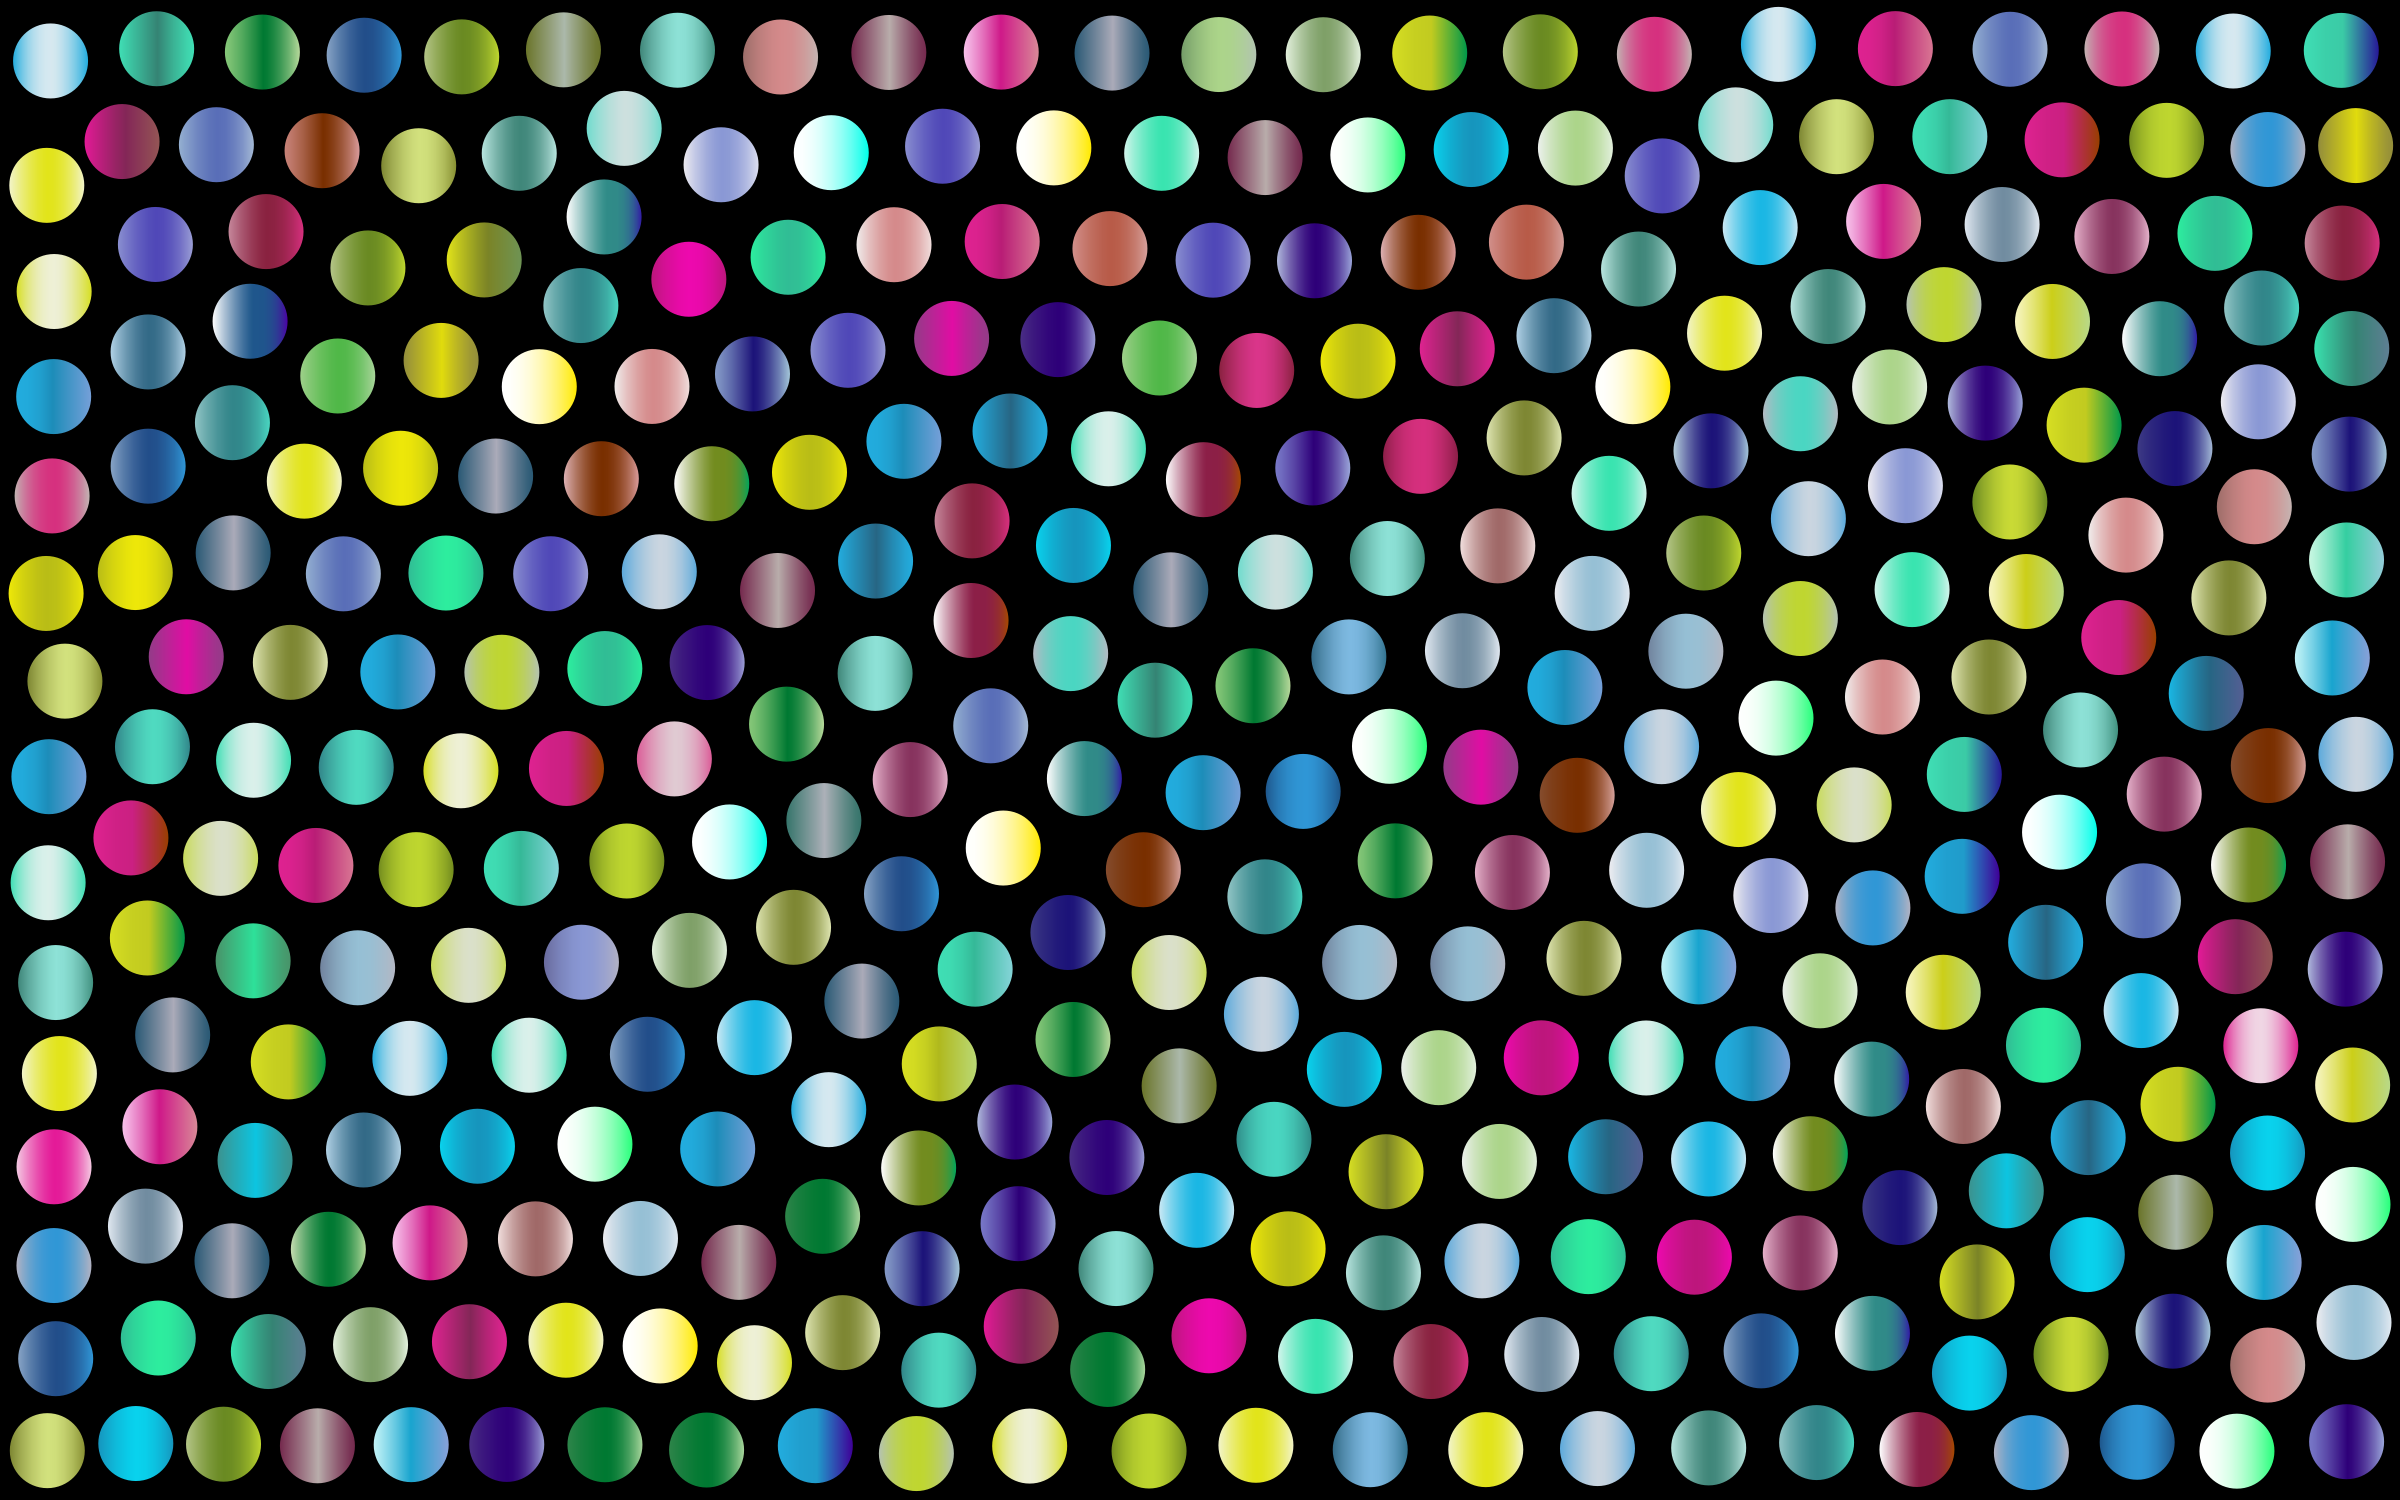 Prismatic Dots Background 4 by GDJ